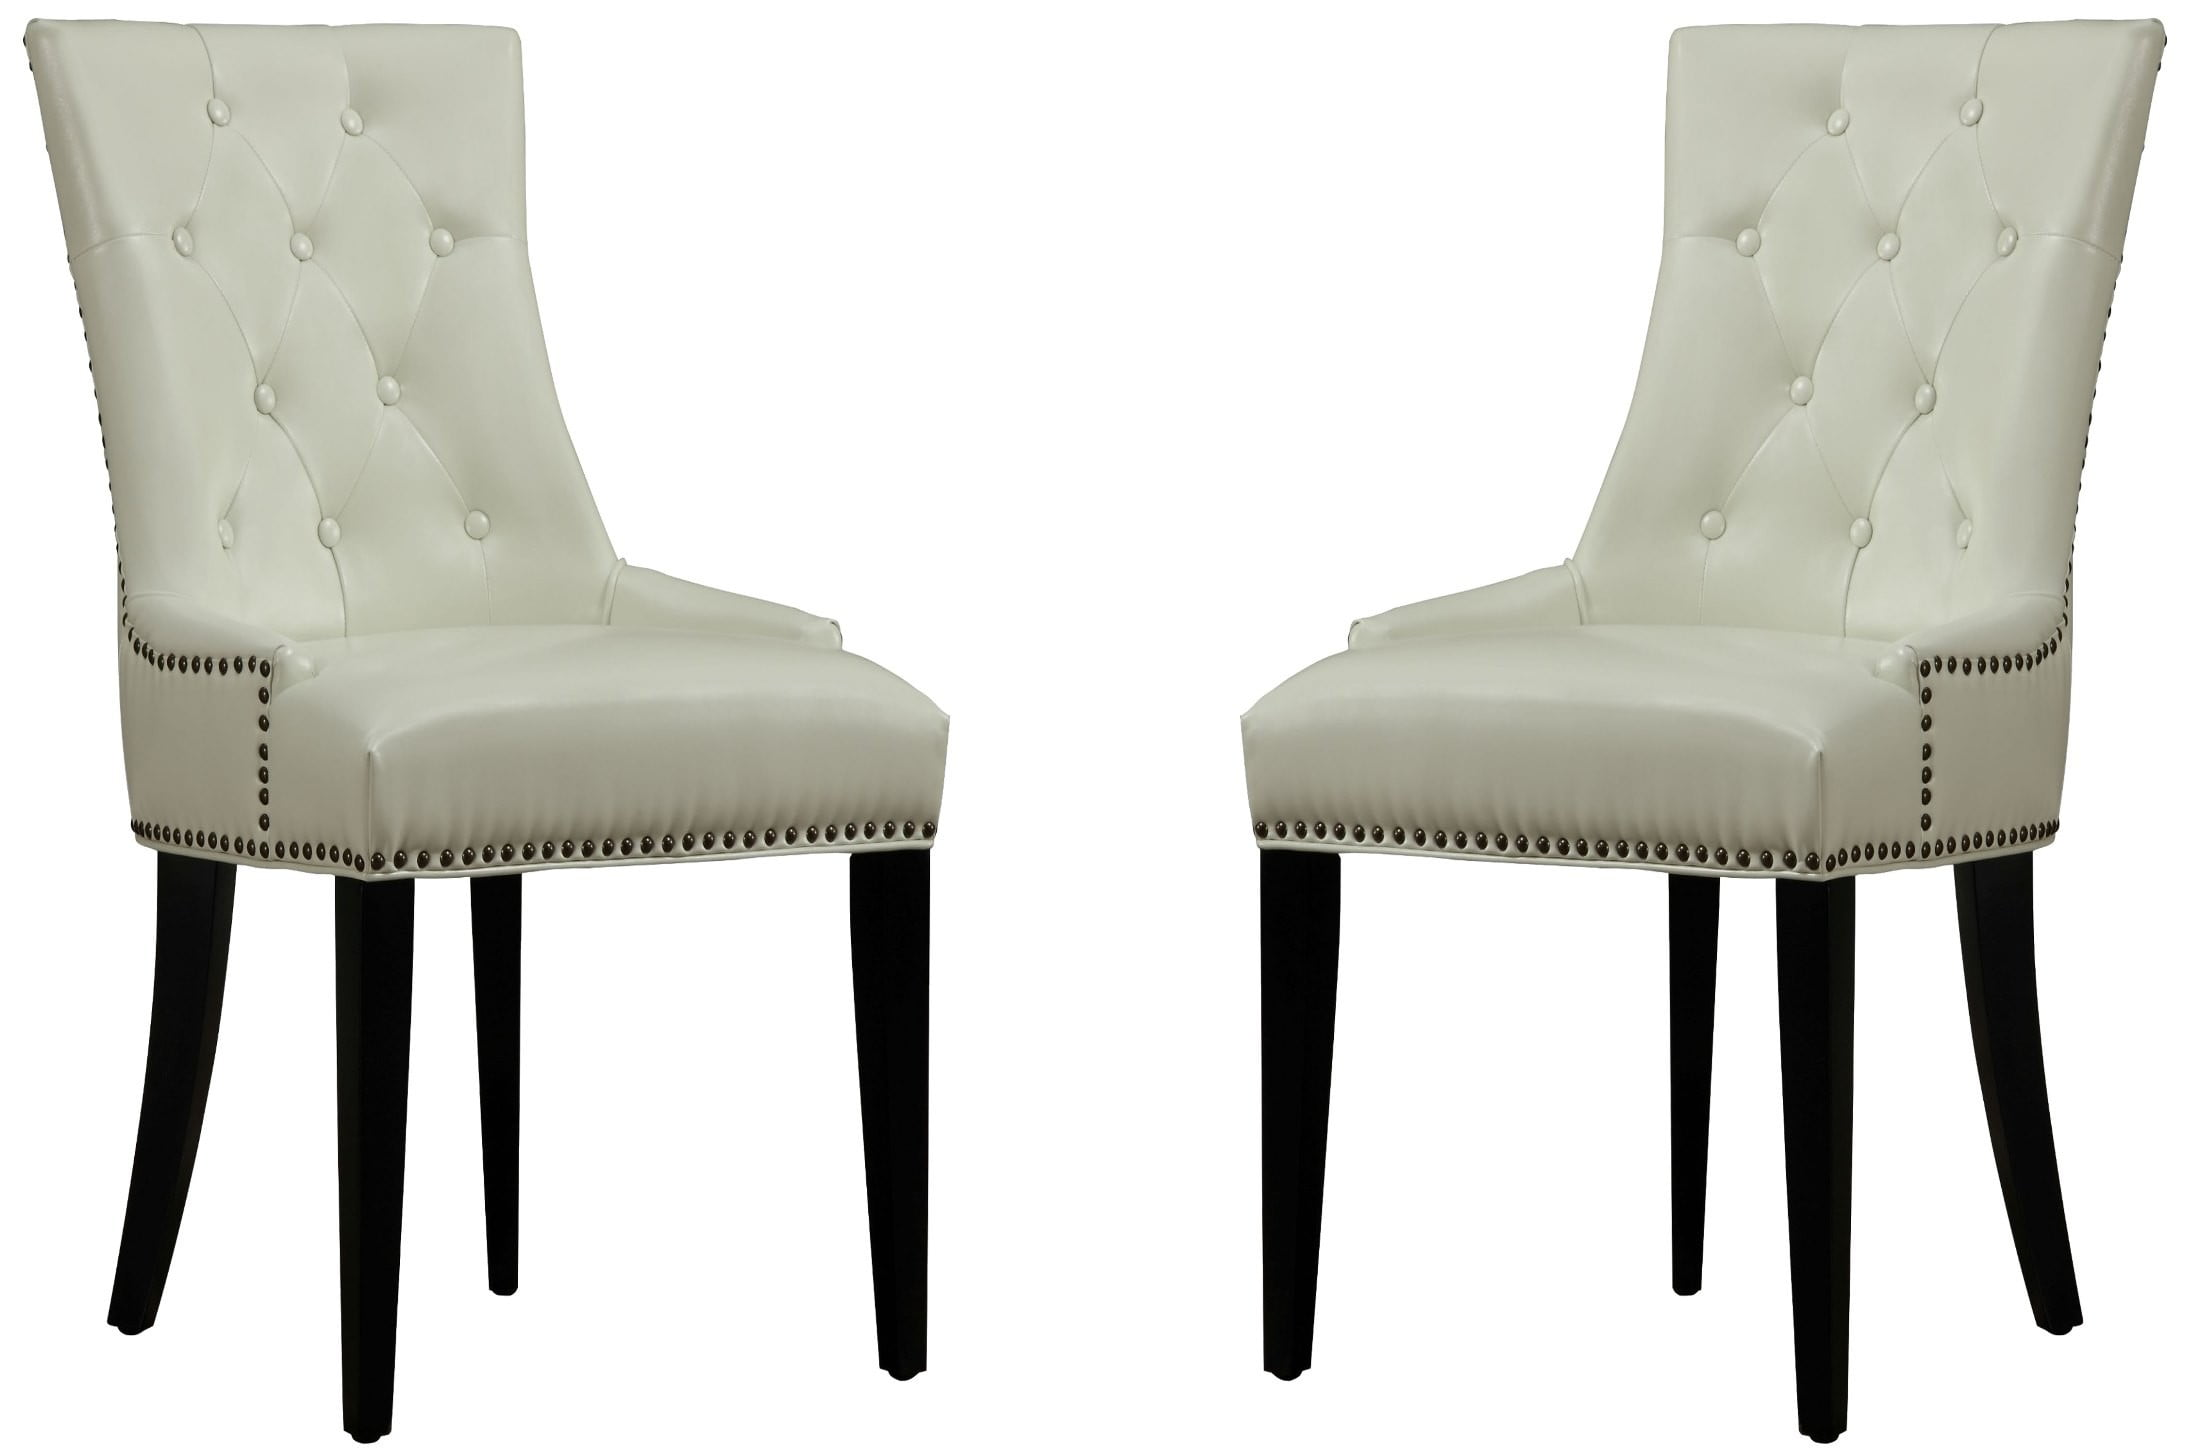 Cream Chairs Uptown Cream Leather Dining Chair Set Of 2 From Tov D29